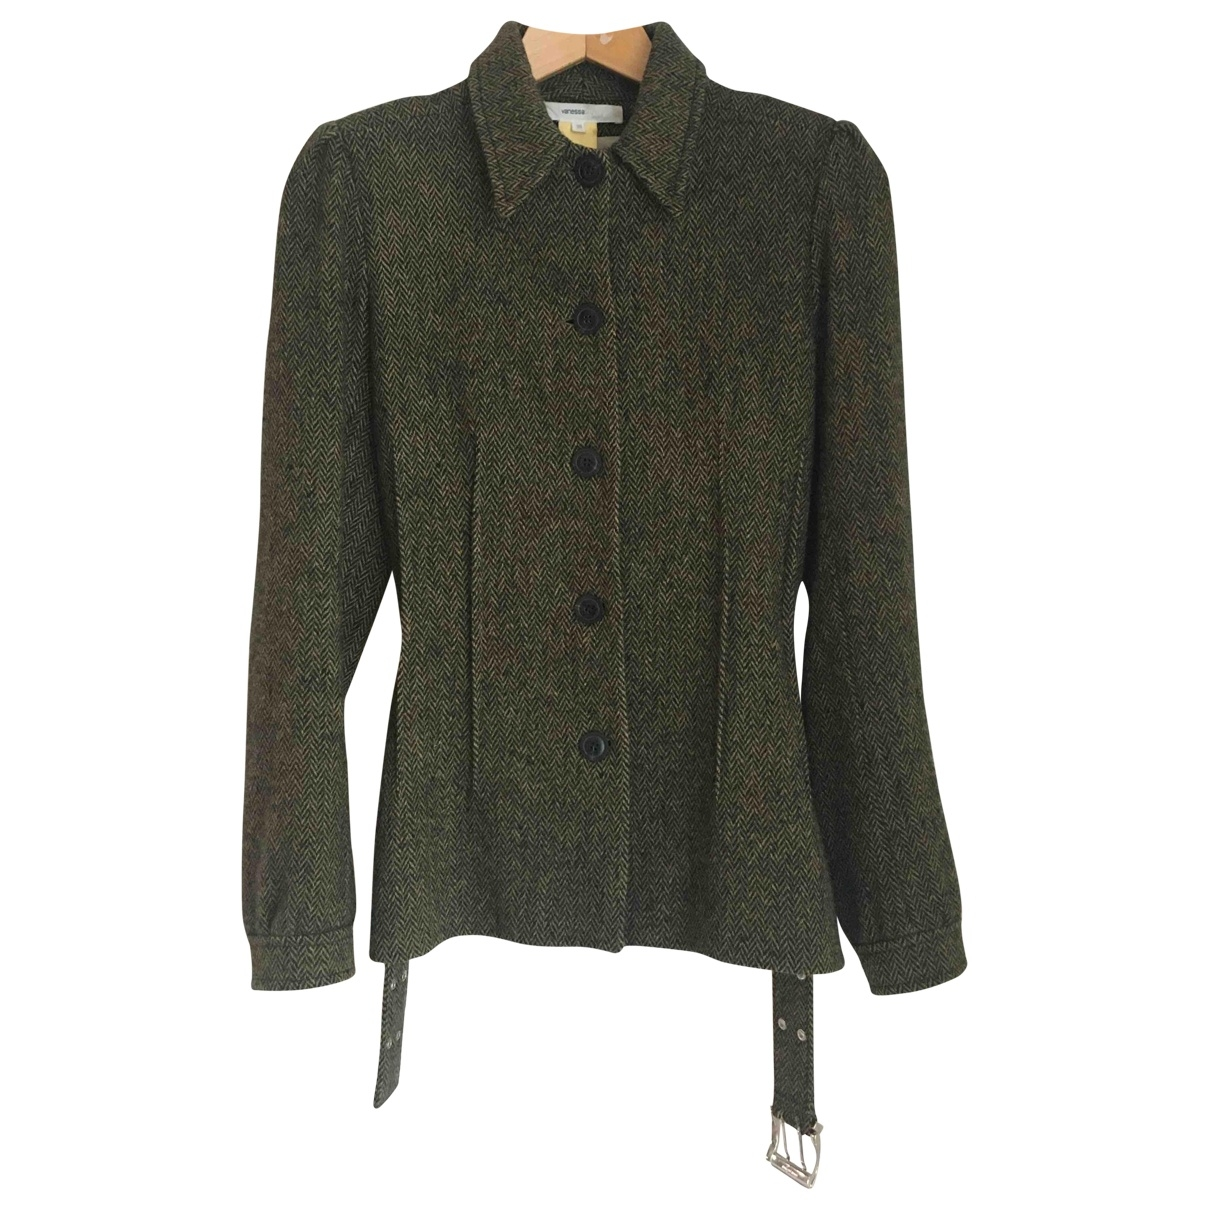 Vanessa Bruno \N Khaki Wool jacket for Women 38 FR